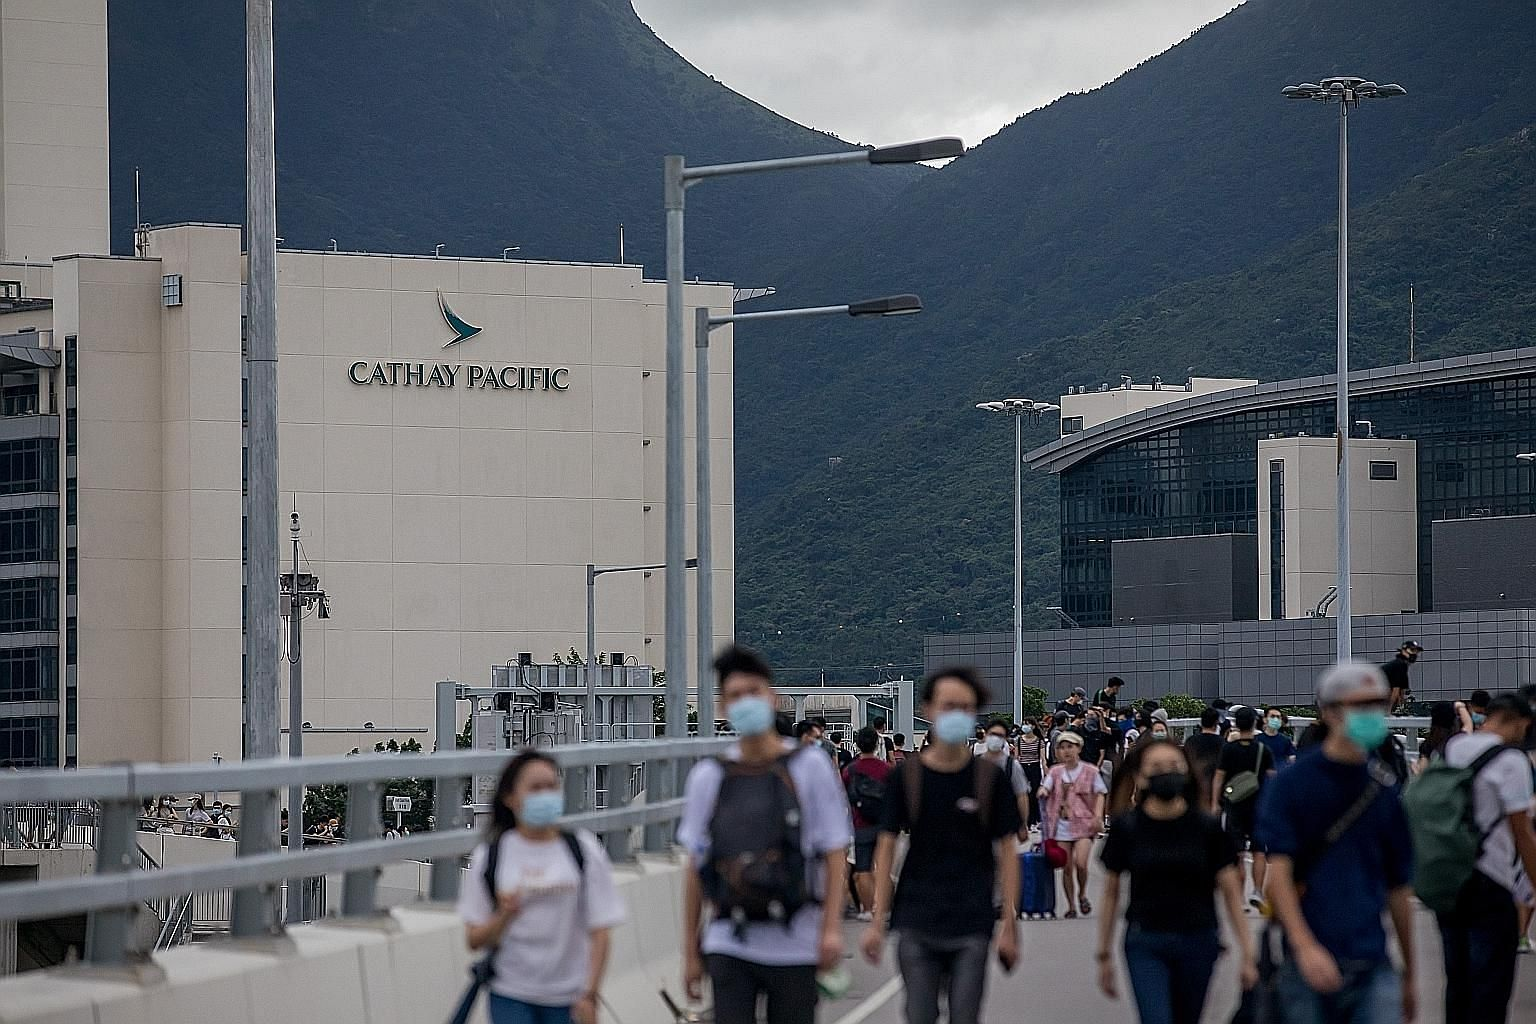 Cathay Pacific said it will cut capacity for the upcoming winter season as the airline battles a slump in demand from travellers avoiding Hong Kong amid massive anti-government protests in the city. PHOTO: BLOOMBERG